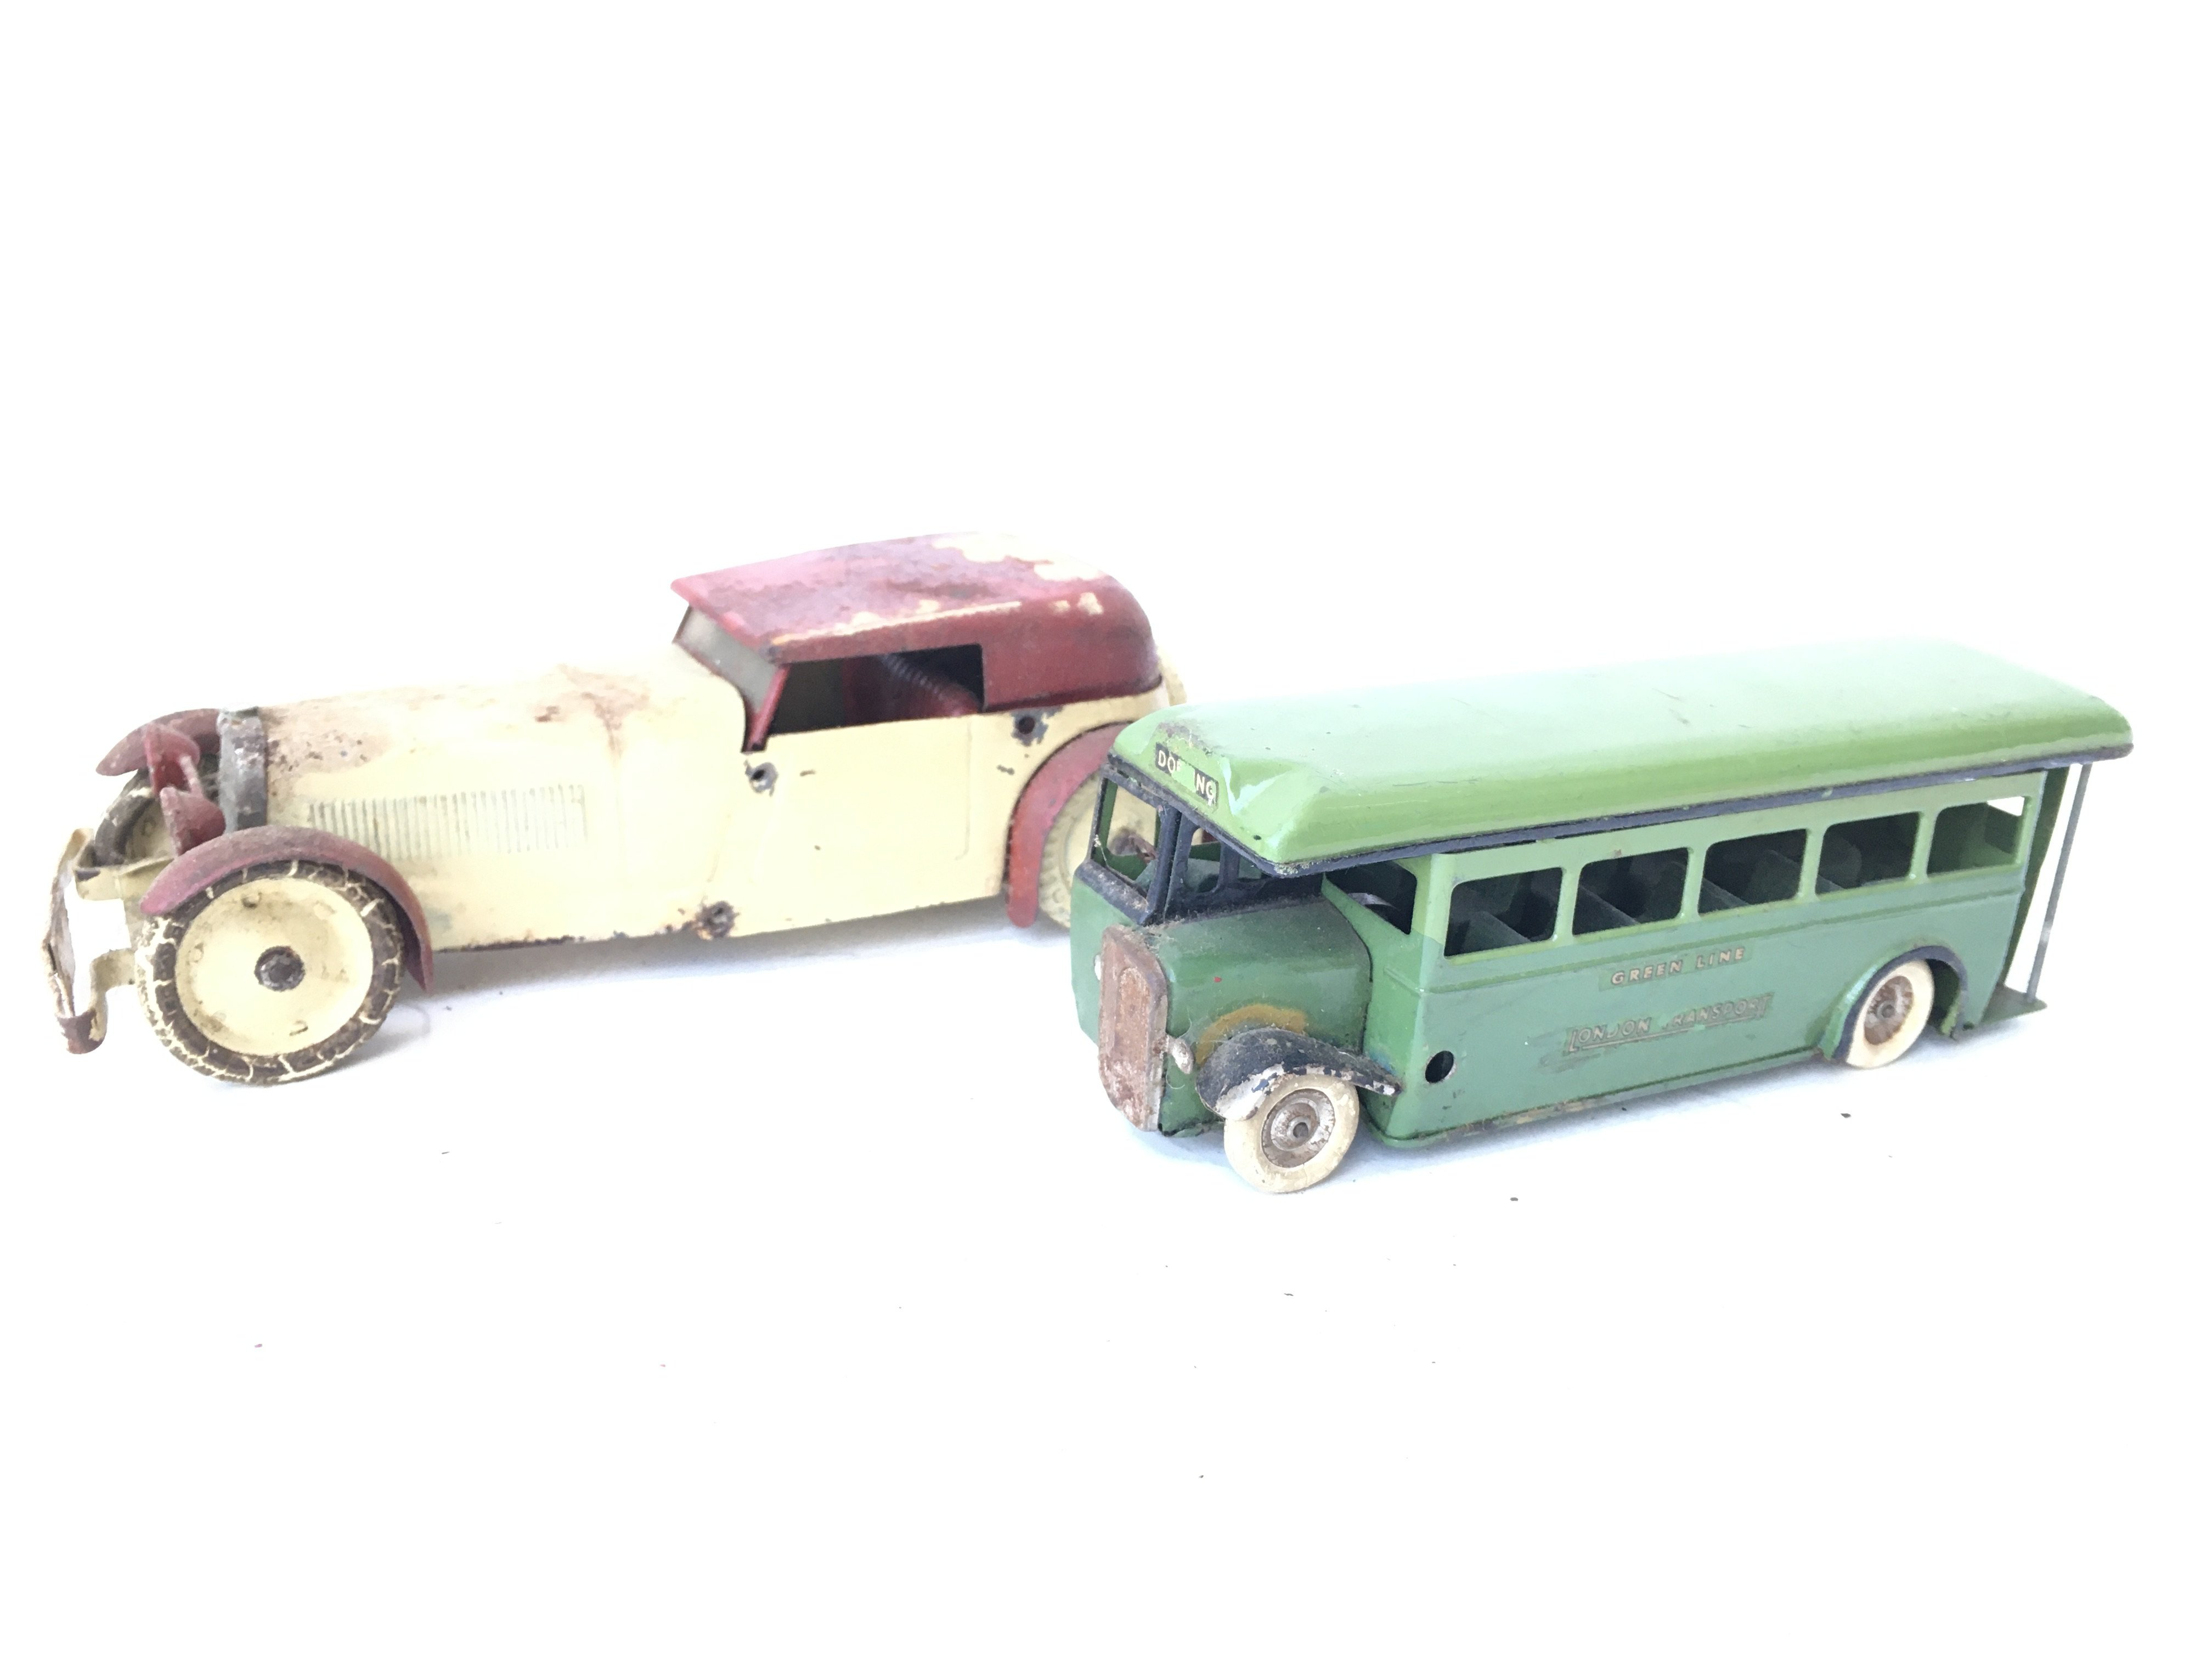 A Tri-Ang Minic Toys Green Line Bus and a Tin Plat - Image 2 of 2